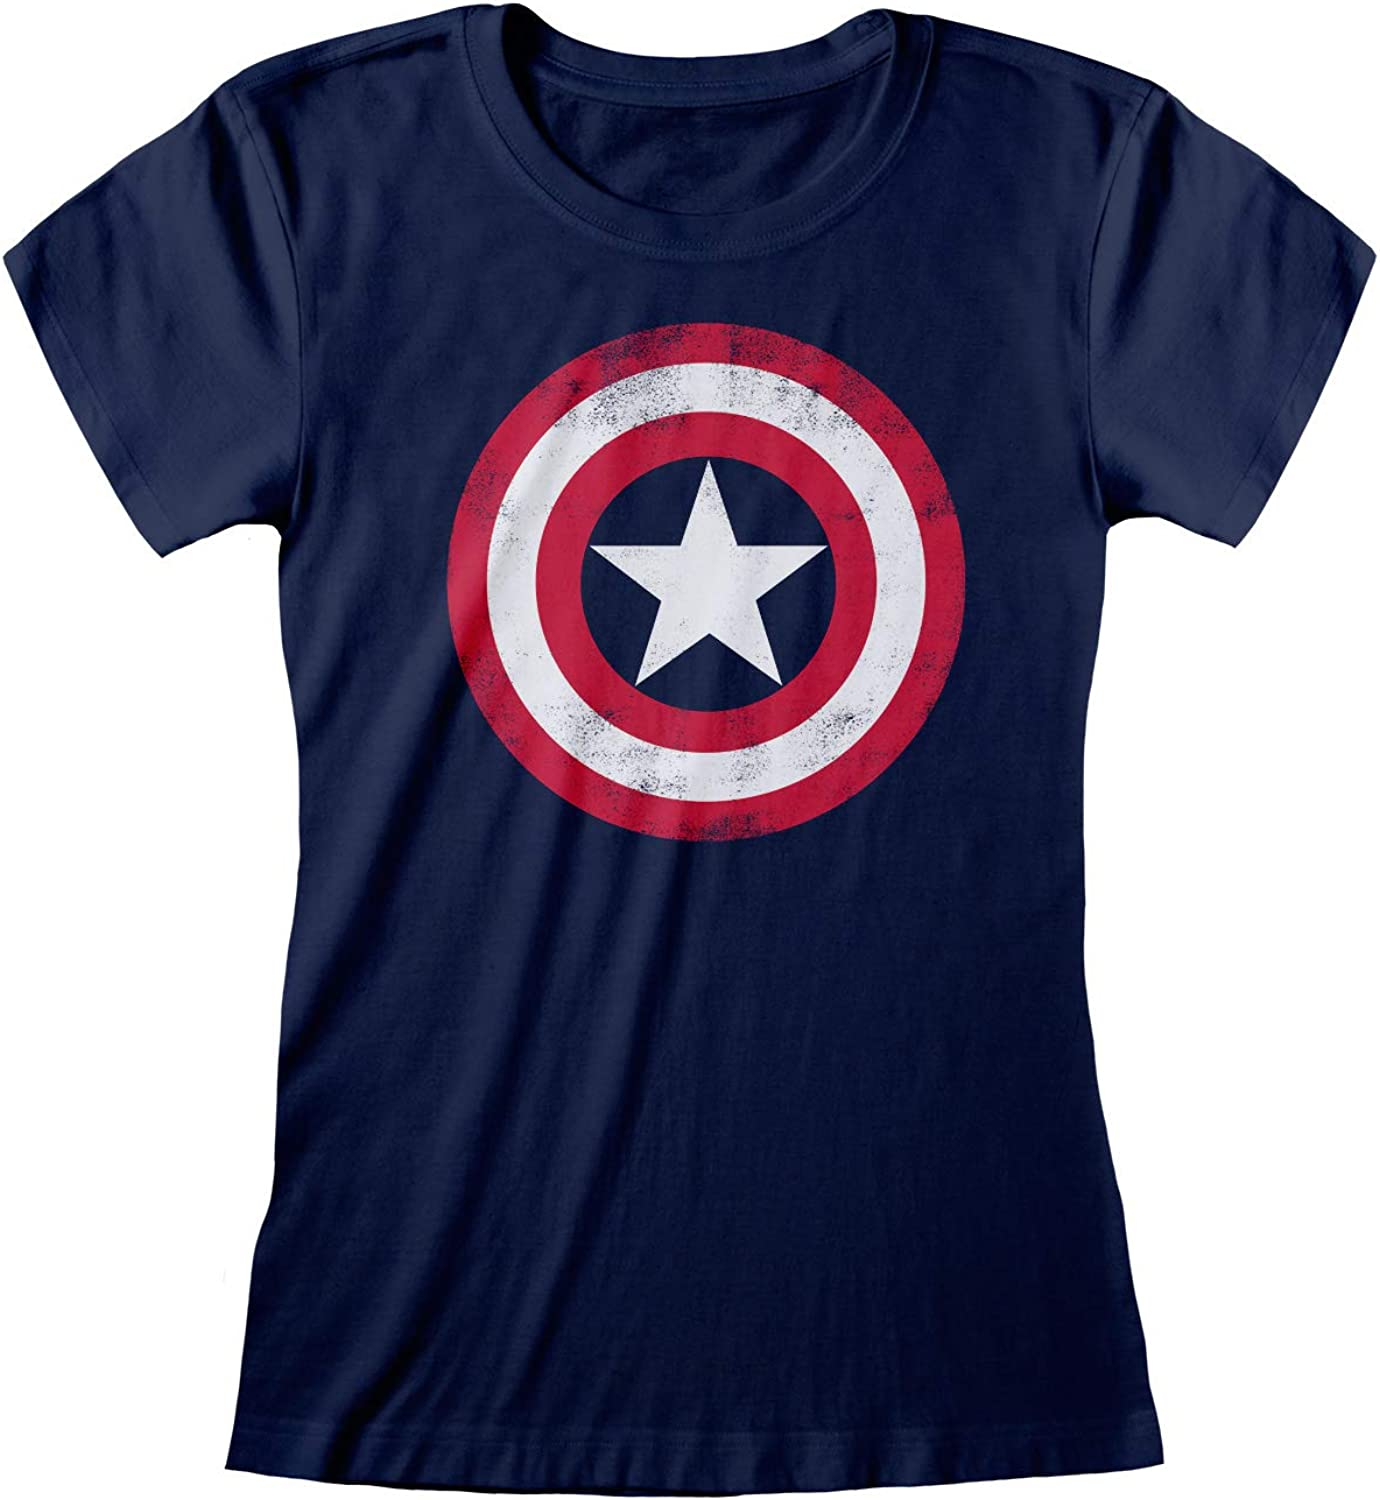 Mum Daughter Sister Gift Idea Official Merchandise Marvel Avengers Assemble Captain America Distressed Shield Womens Fitted T-Shirt Birthday Gifts Ladies Fashion Slim Fitting Top S-XXL